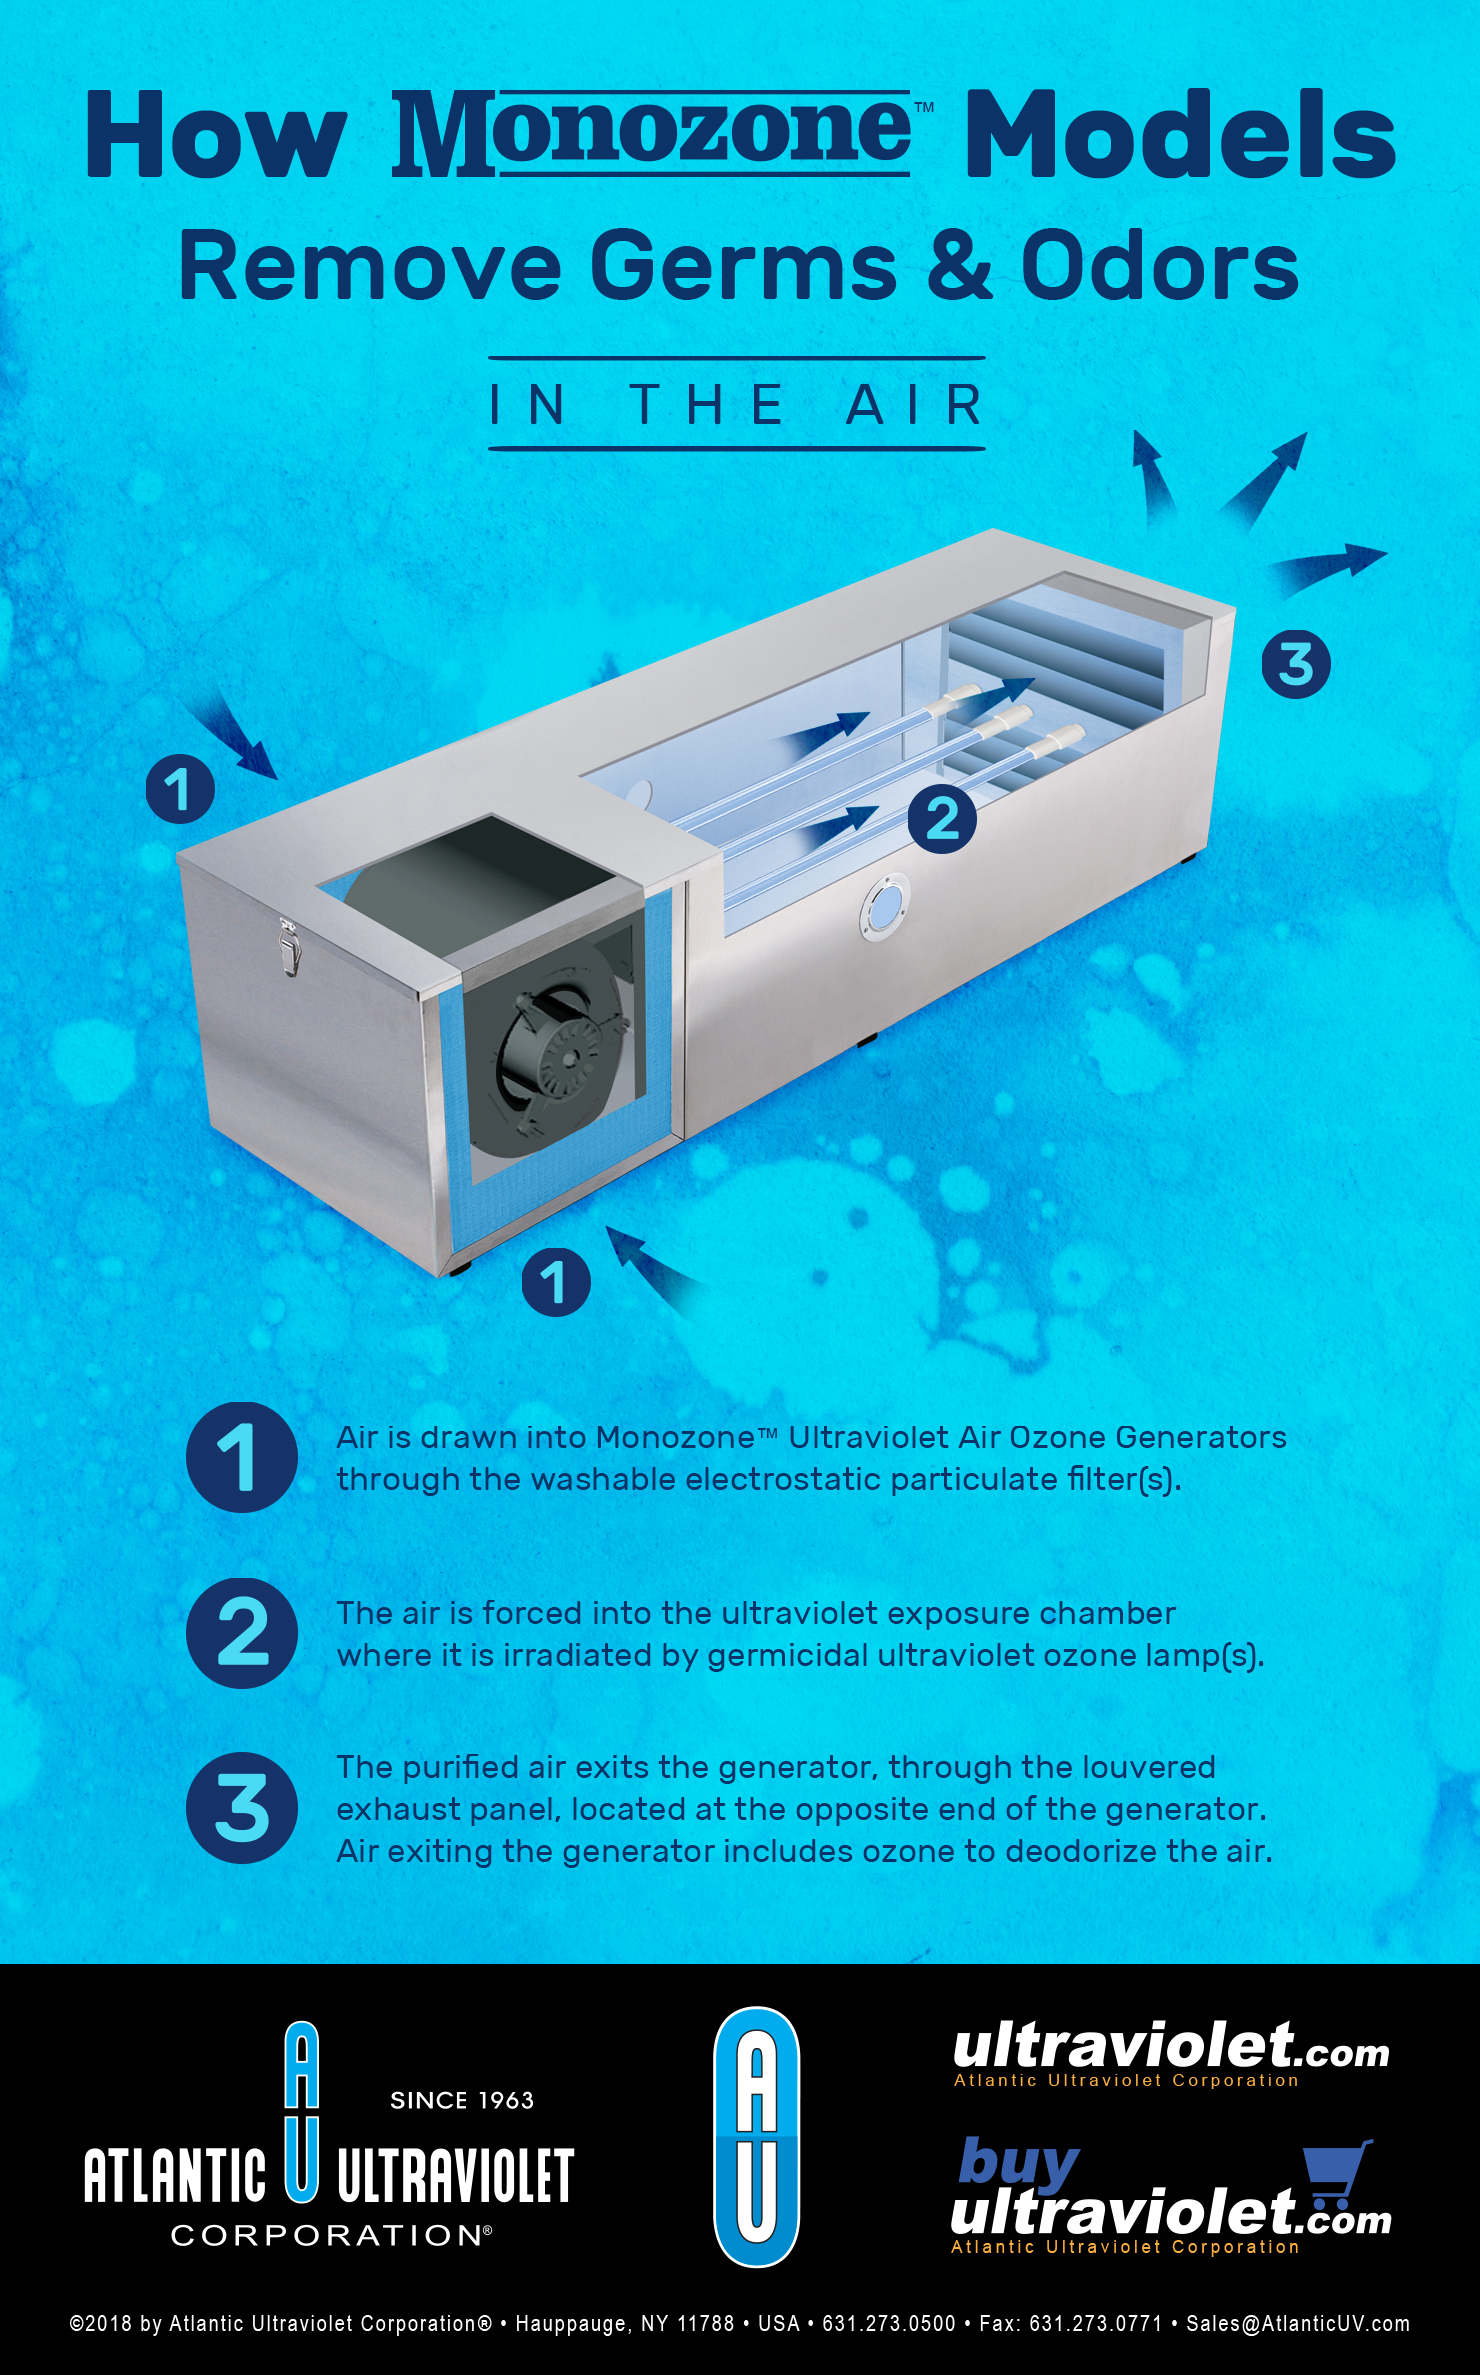 How Monozone Models Remove Germs and Odors in the Air - Infographic